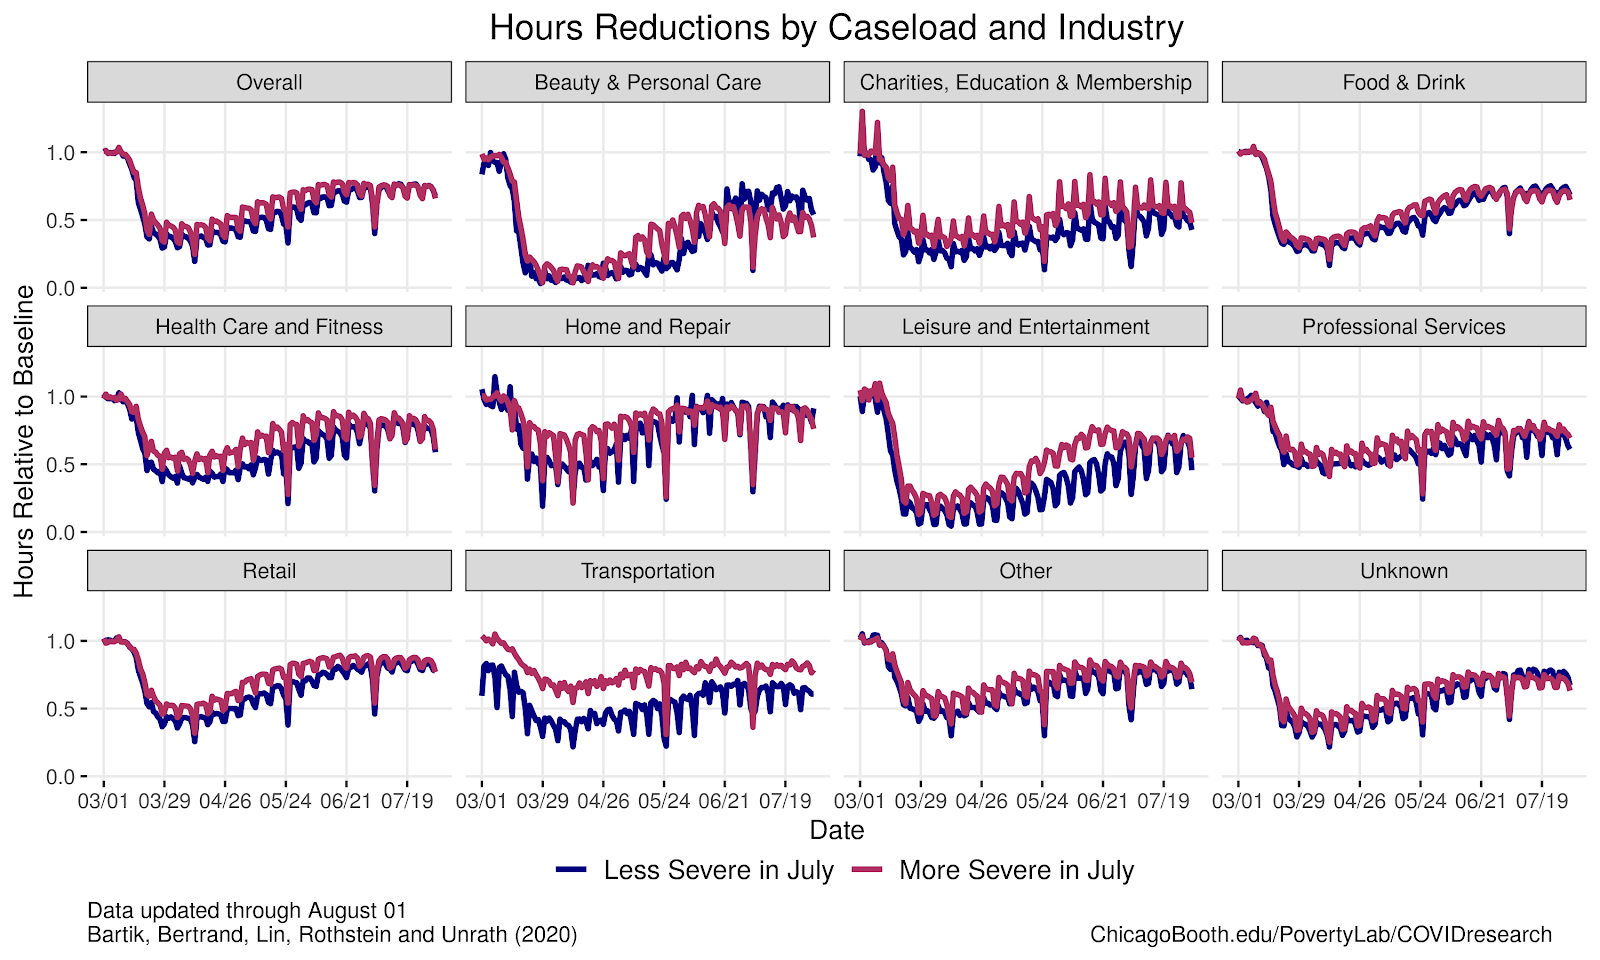 Line graphs showing hours reductions relative to industry